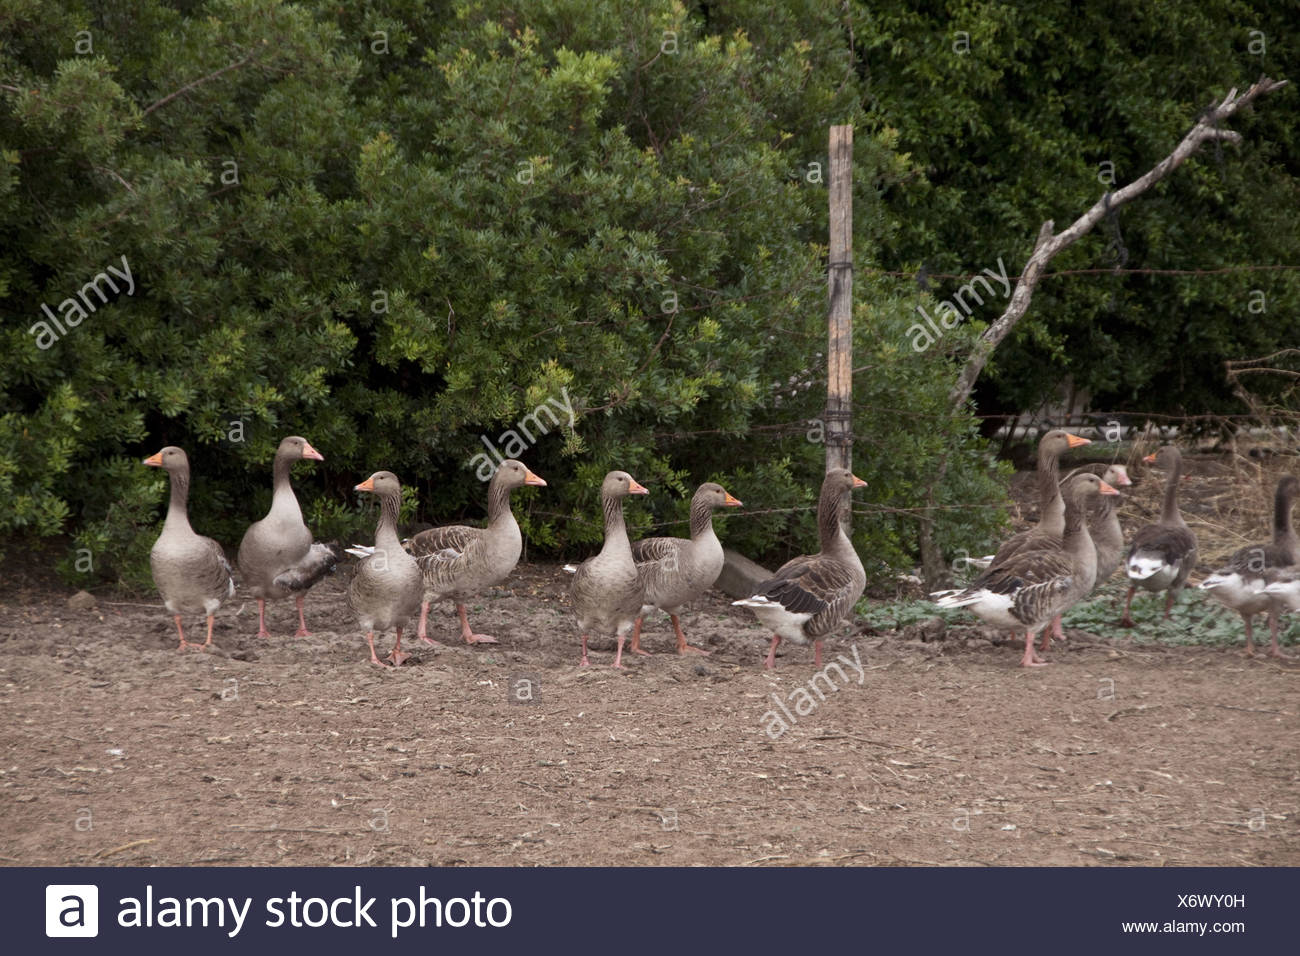 Domesticated grey lag geese in farm yard situation - Stock Image